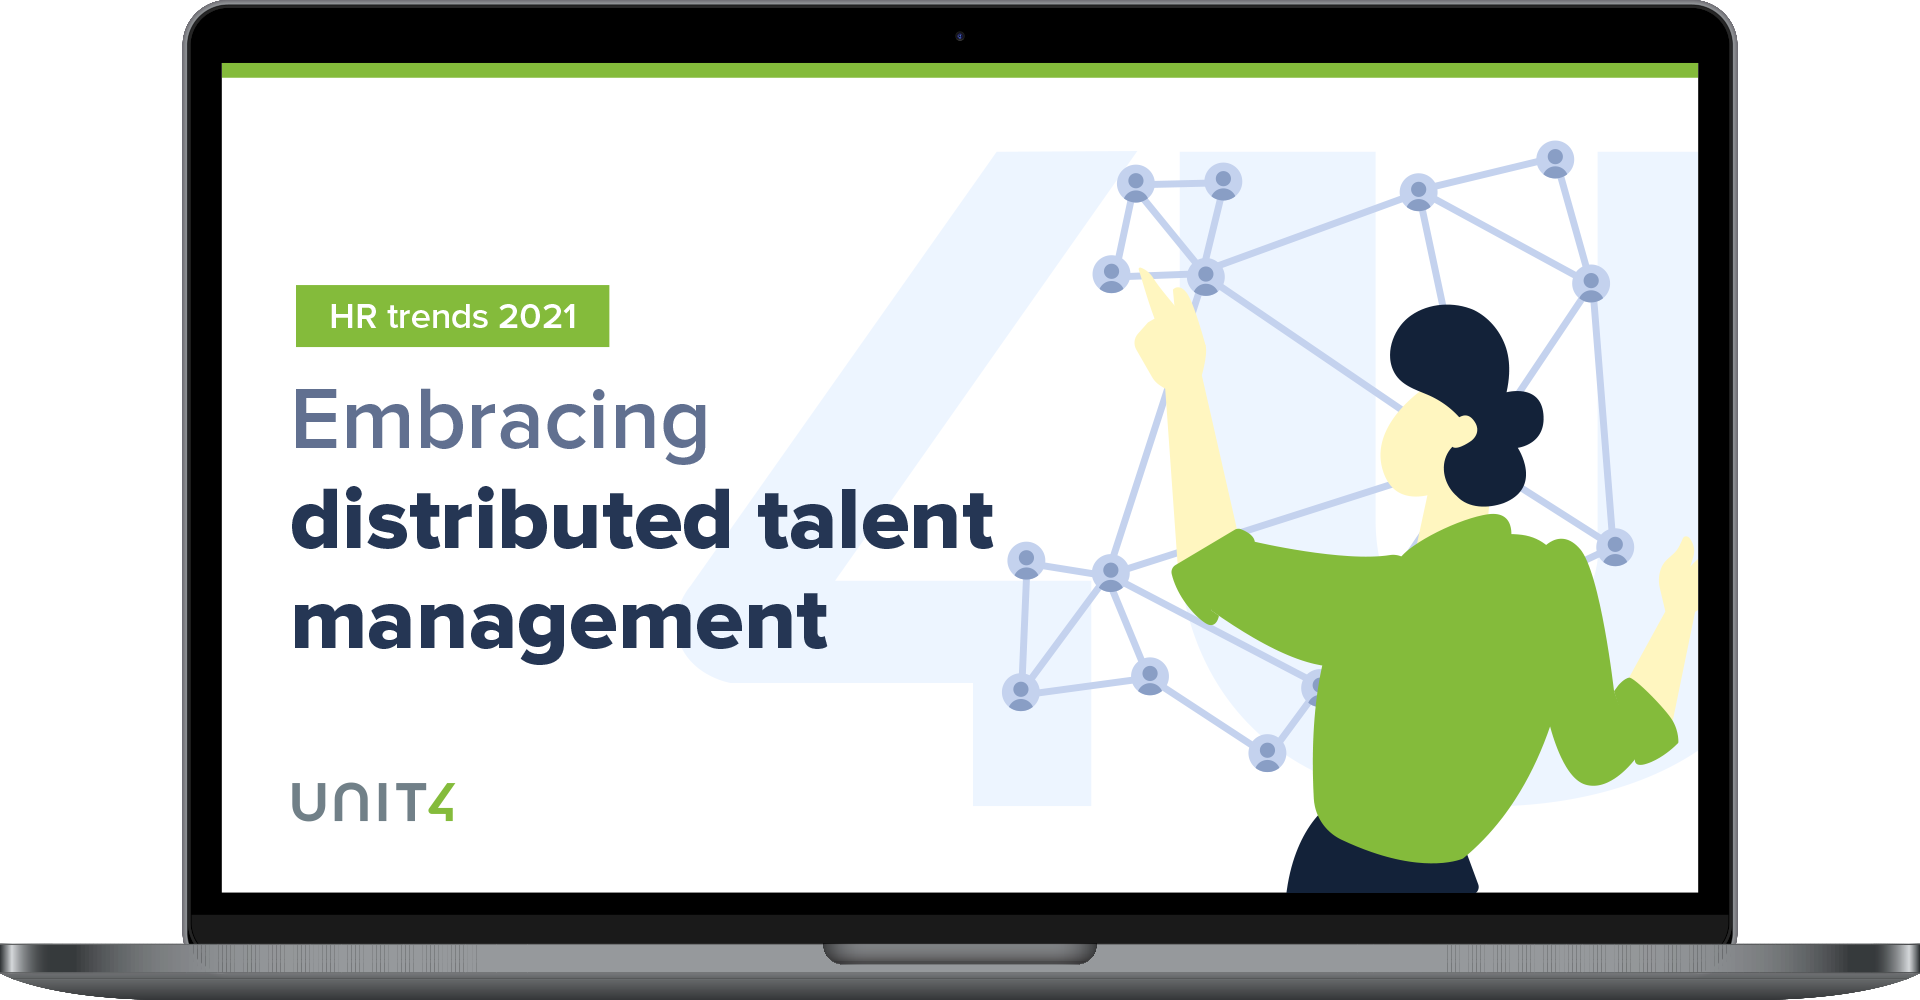 image-embracing-distributed-talent-management